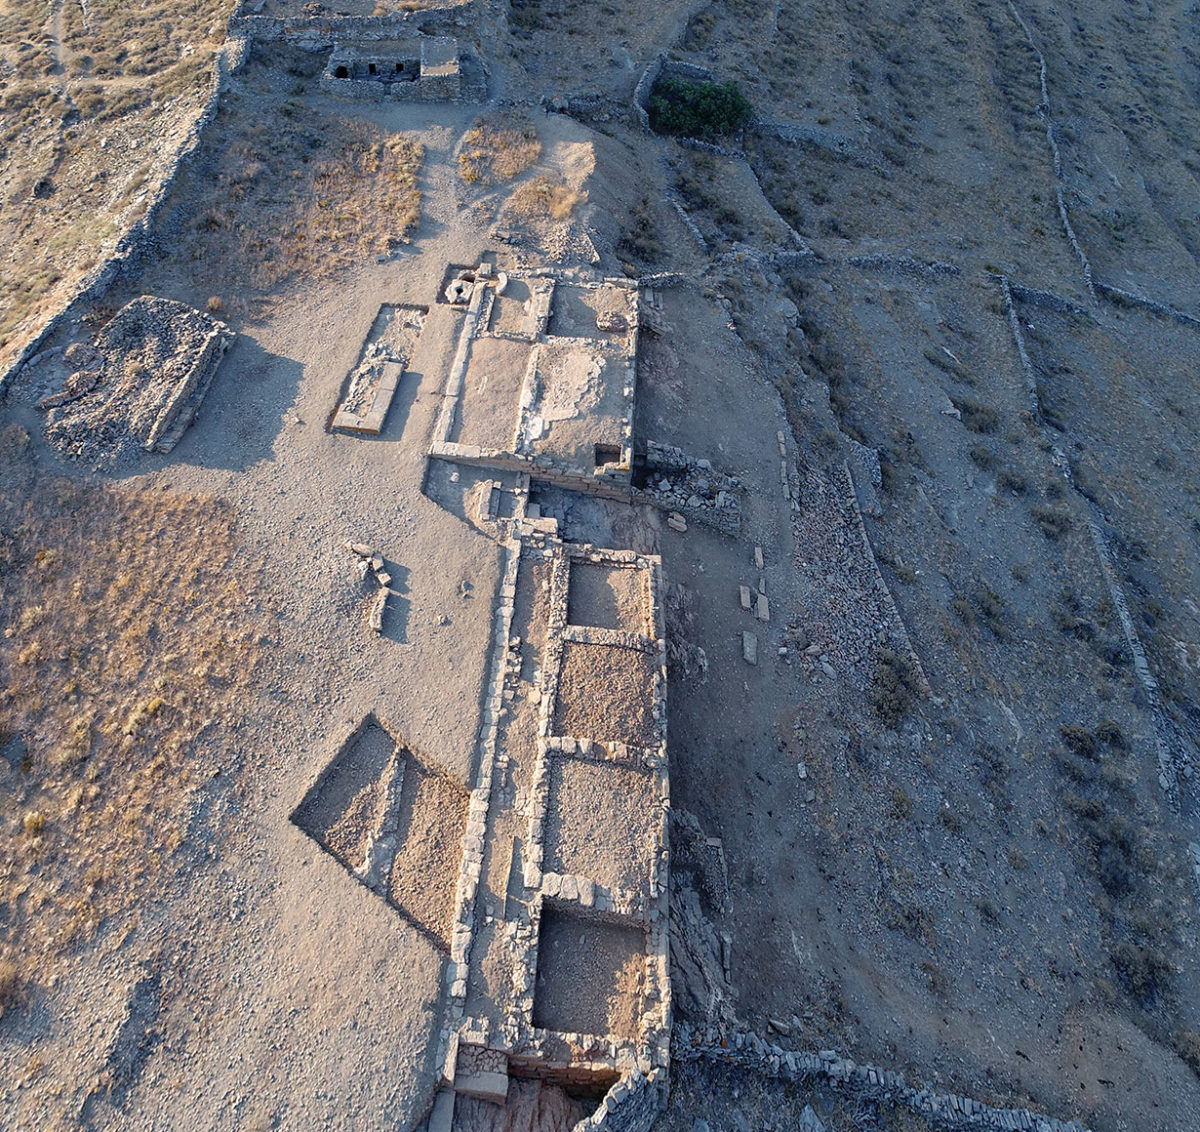 Fig. 17. Aerial photograph of the Ano Polis and Buildings 1 and 2 on the Middle Plateau, from the north. In the background the Acropolis with the sanctuary of Demeter. Photo Credit: Kostas Xenikakis.